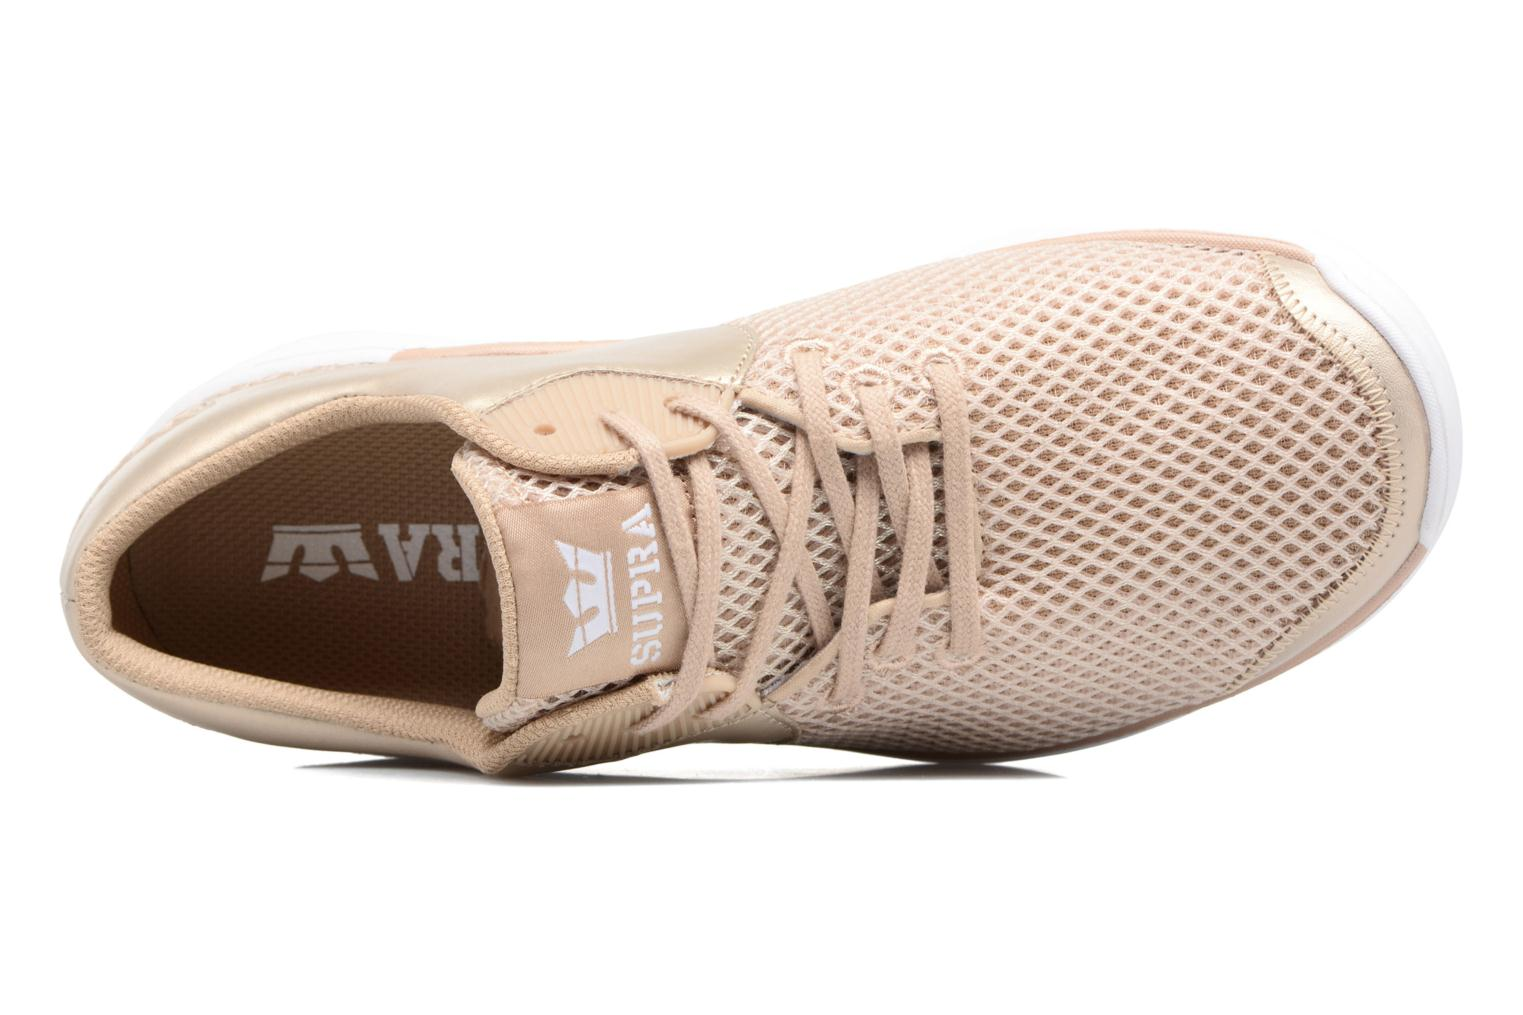 Baskets Supra Women's noize Or et bronze vue gauche